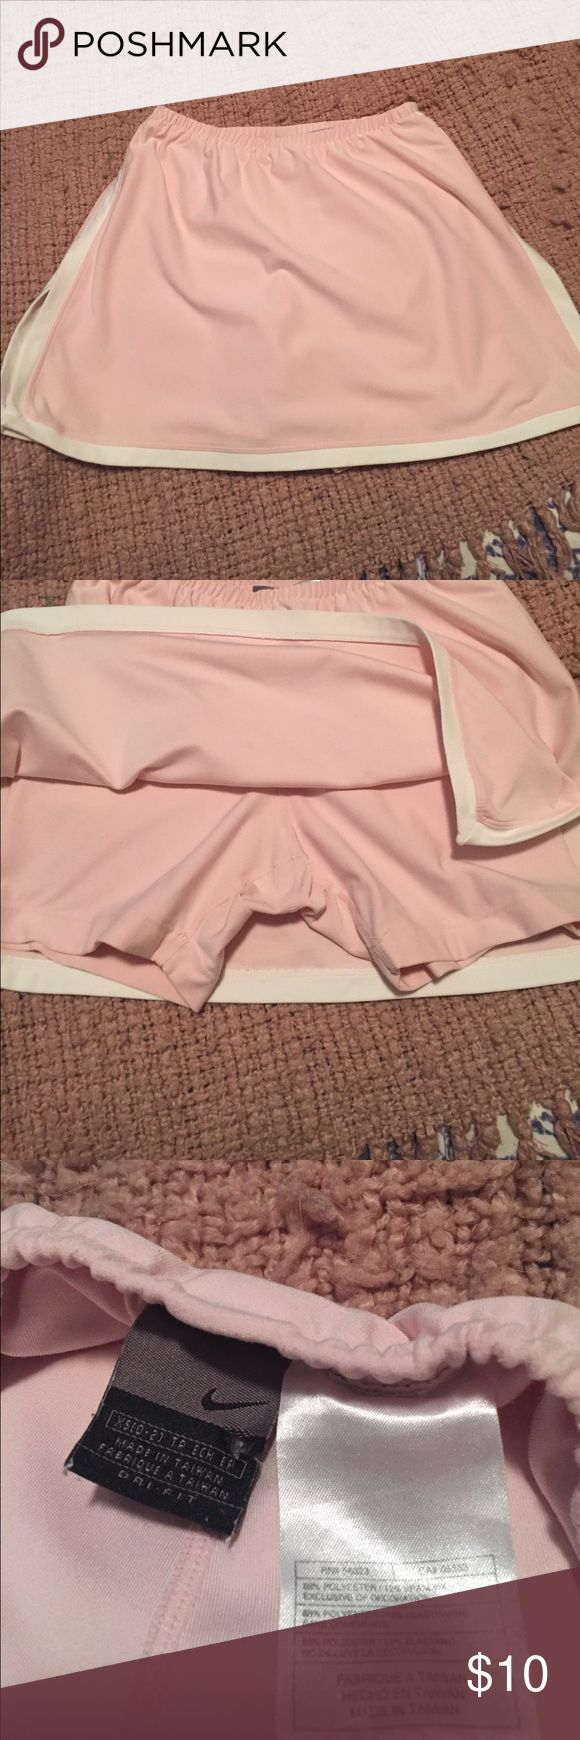 Nike skort Nike skirt for all your activities. Great for tennis, golf, walking and running.  Good condition with no stains or tears.  Open to offers.  Color is a light pink and white. Nike Skirts